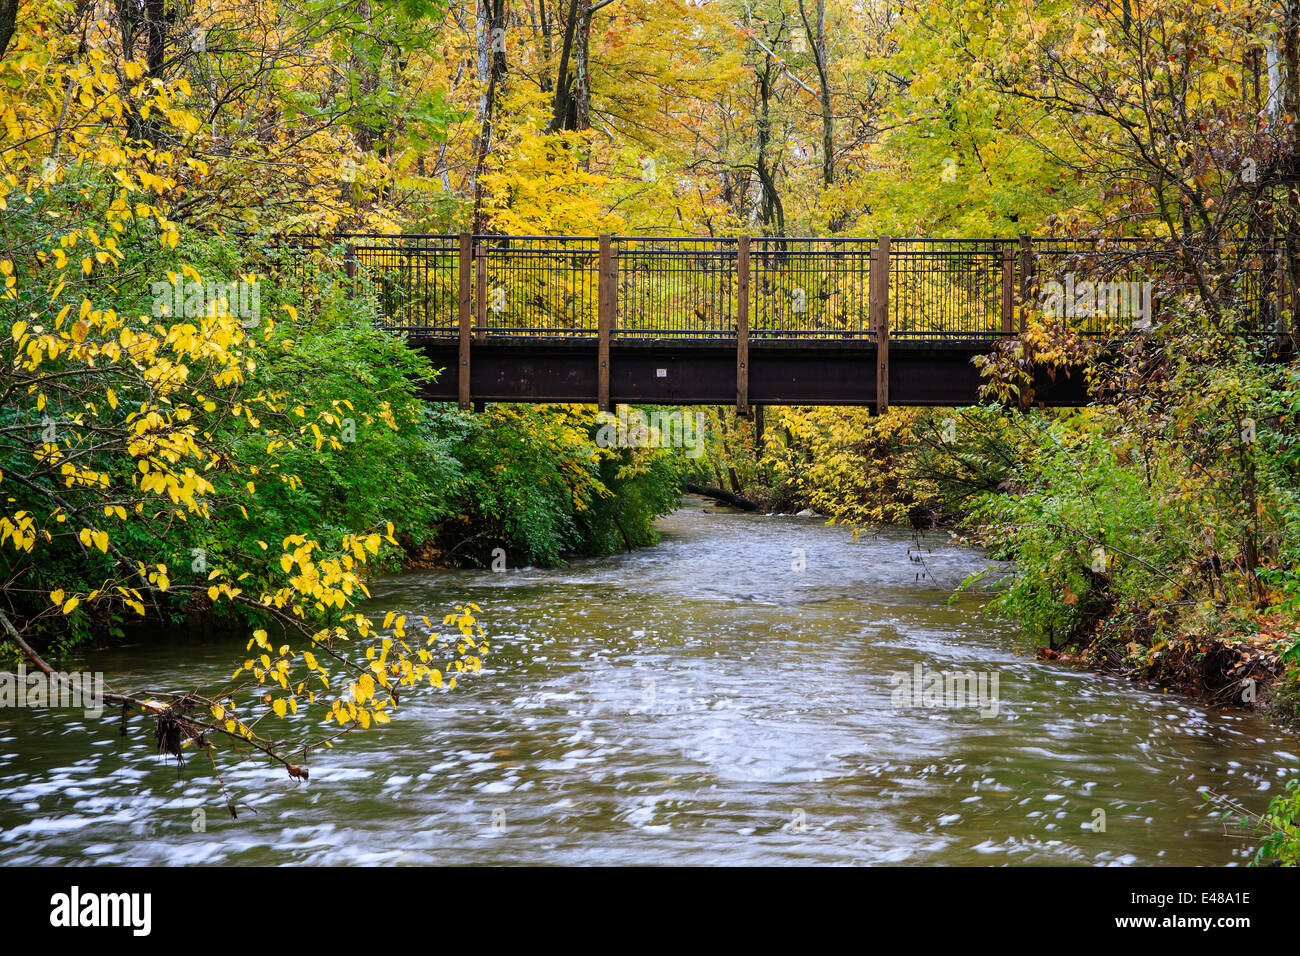 A Foot Bridge Over A River In Autumn At The Park, Sharon Woods, Southwestern Ohio, USA - Stock Image